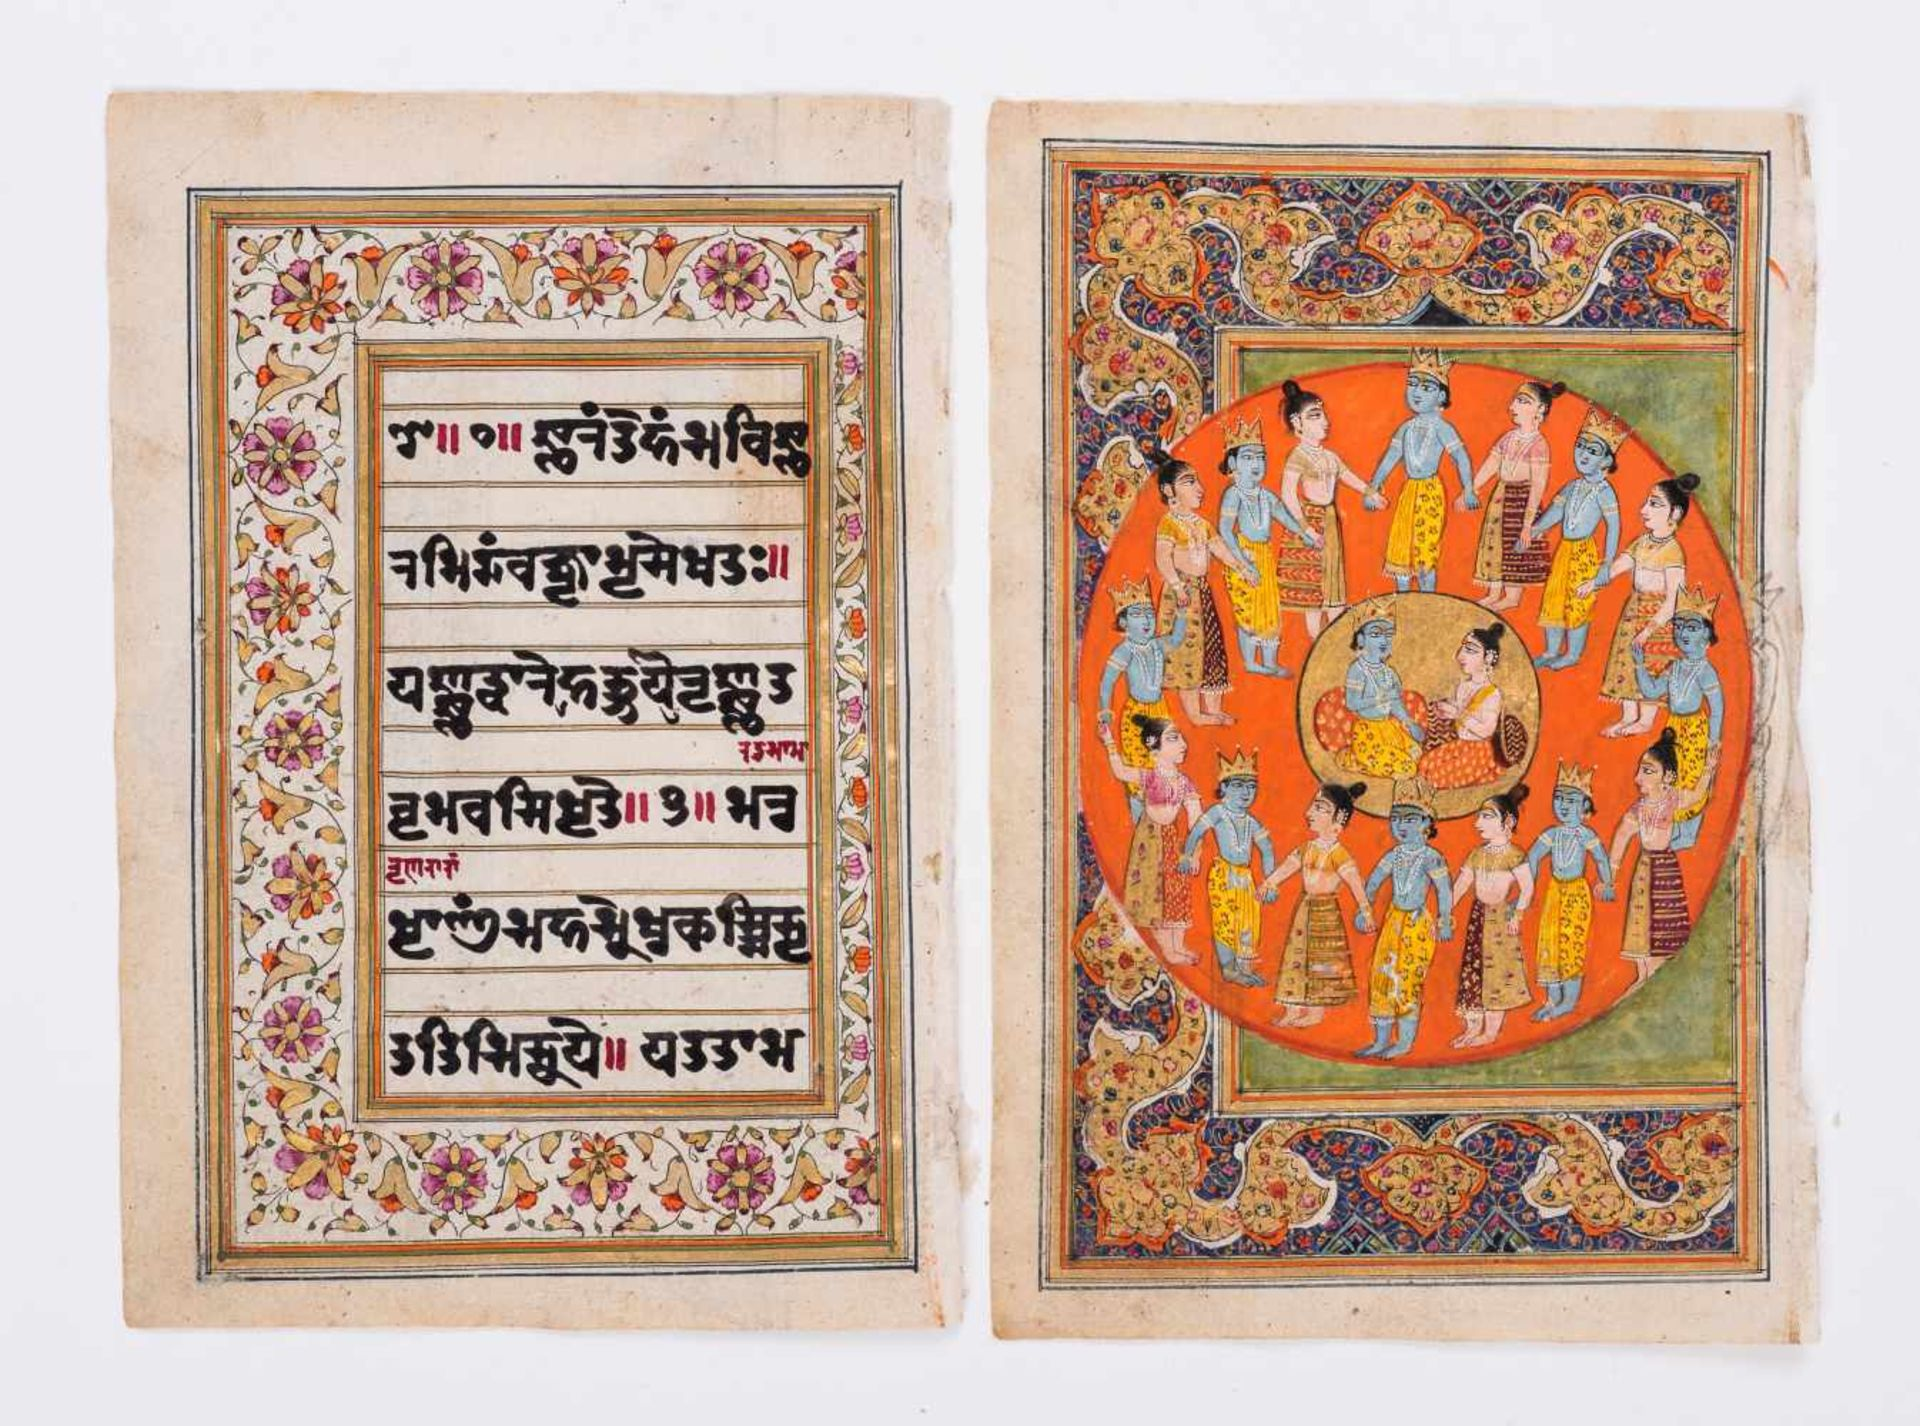 SIX MINIATURE PAINTINGS DEPICTING DEITIES - INDIA, 19th CENTURYMiniature painting with colors and - Image 4 of 7